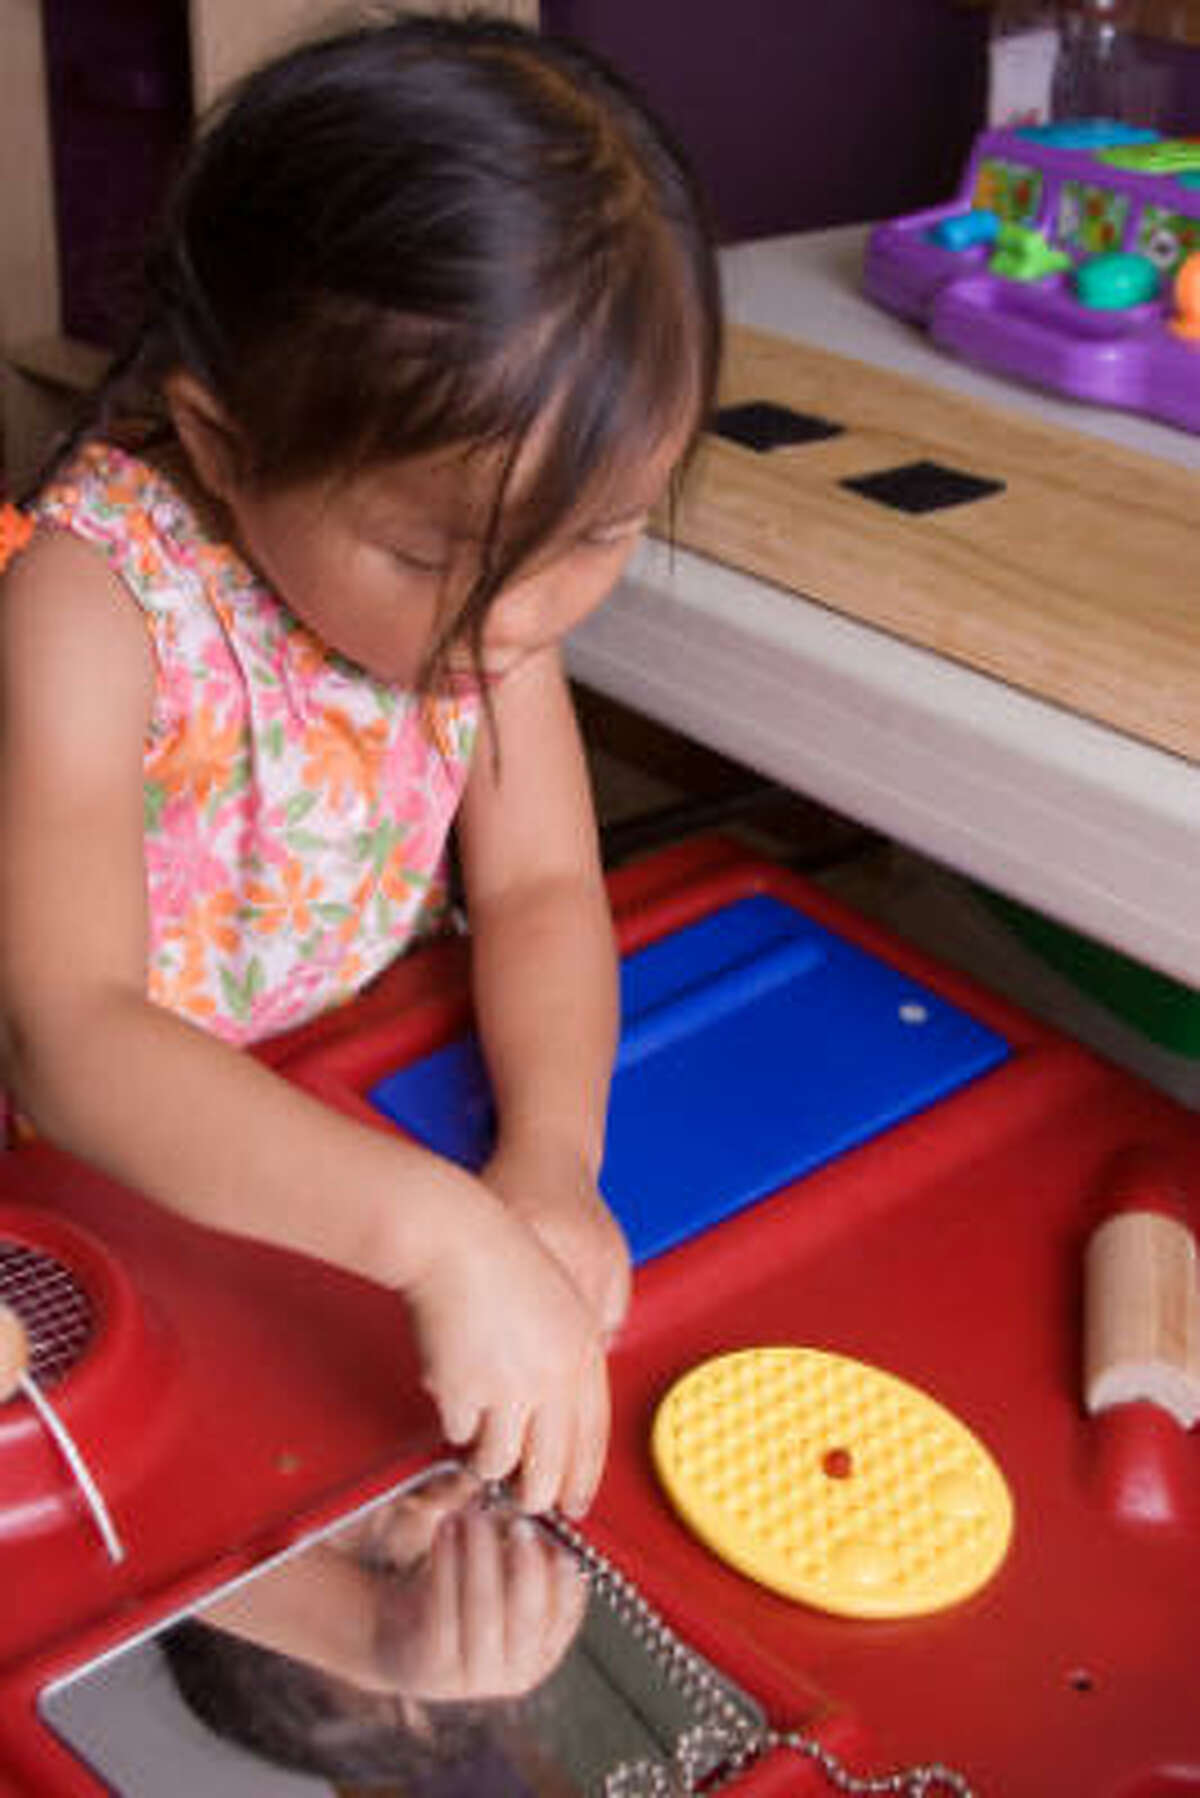 START EARLY: Occupational therapists can help children with potential or known delays improve skills at a very young age to minimize the potential for delays later in life.